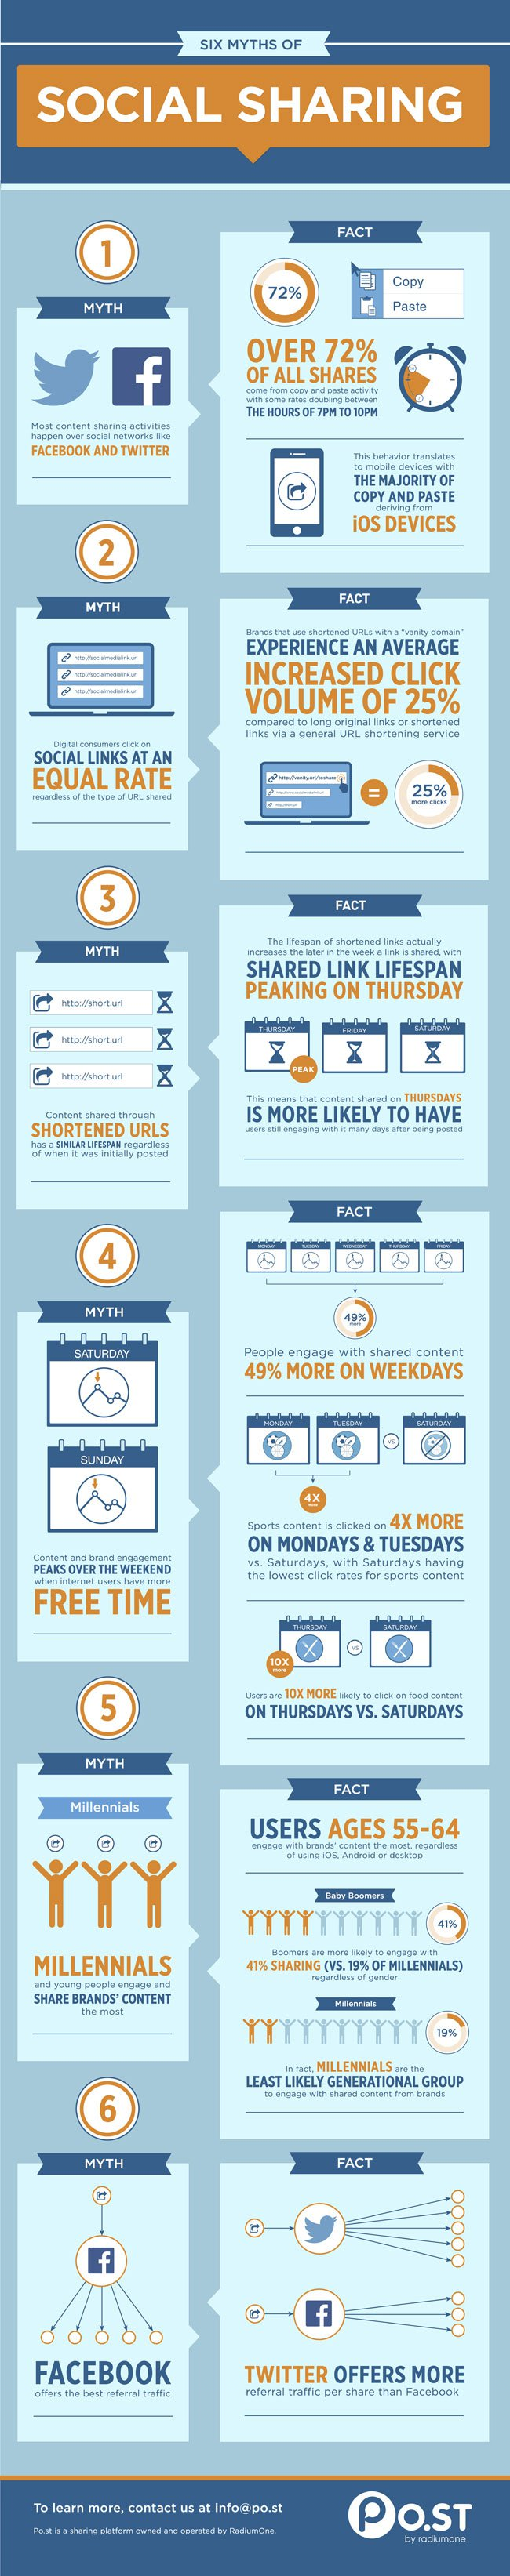 Social Sharing Infographic